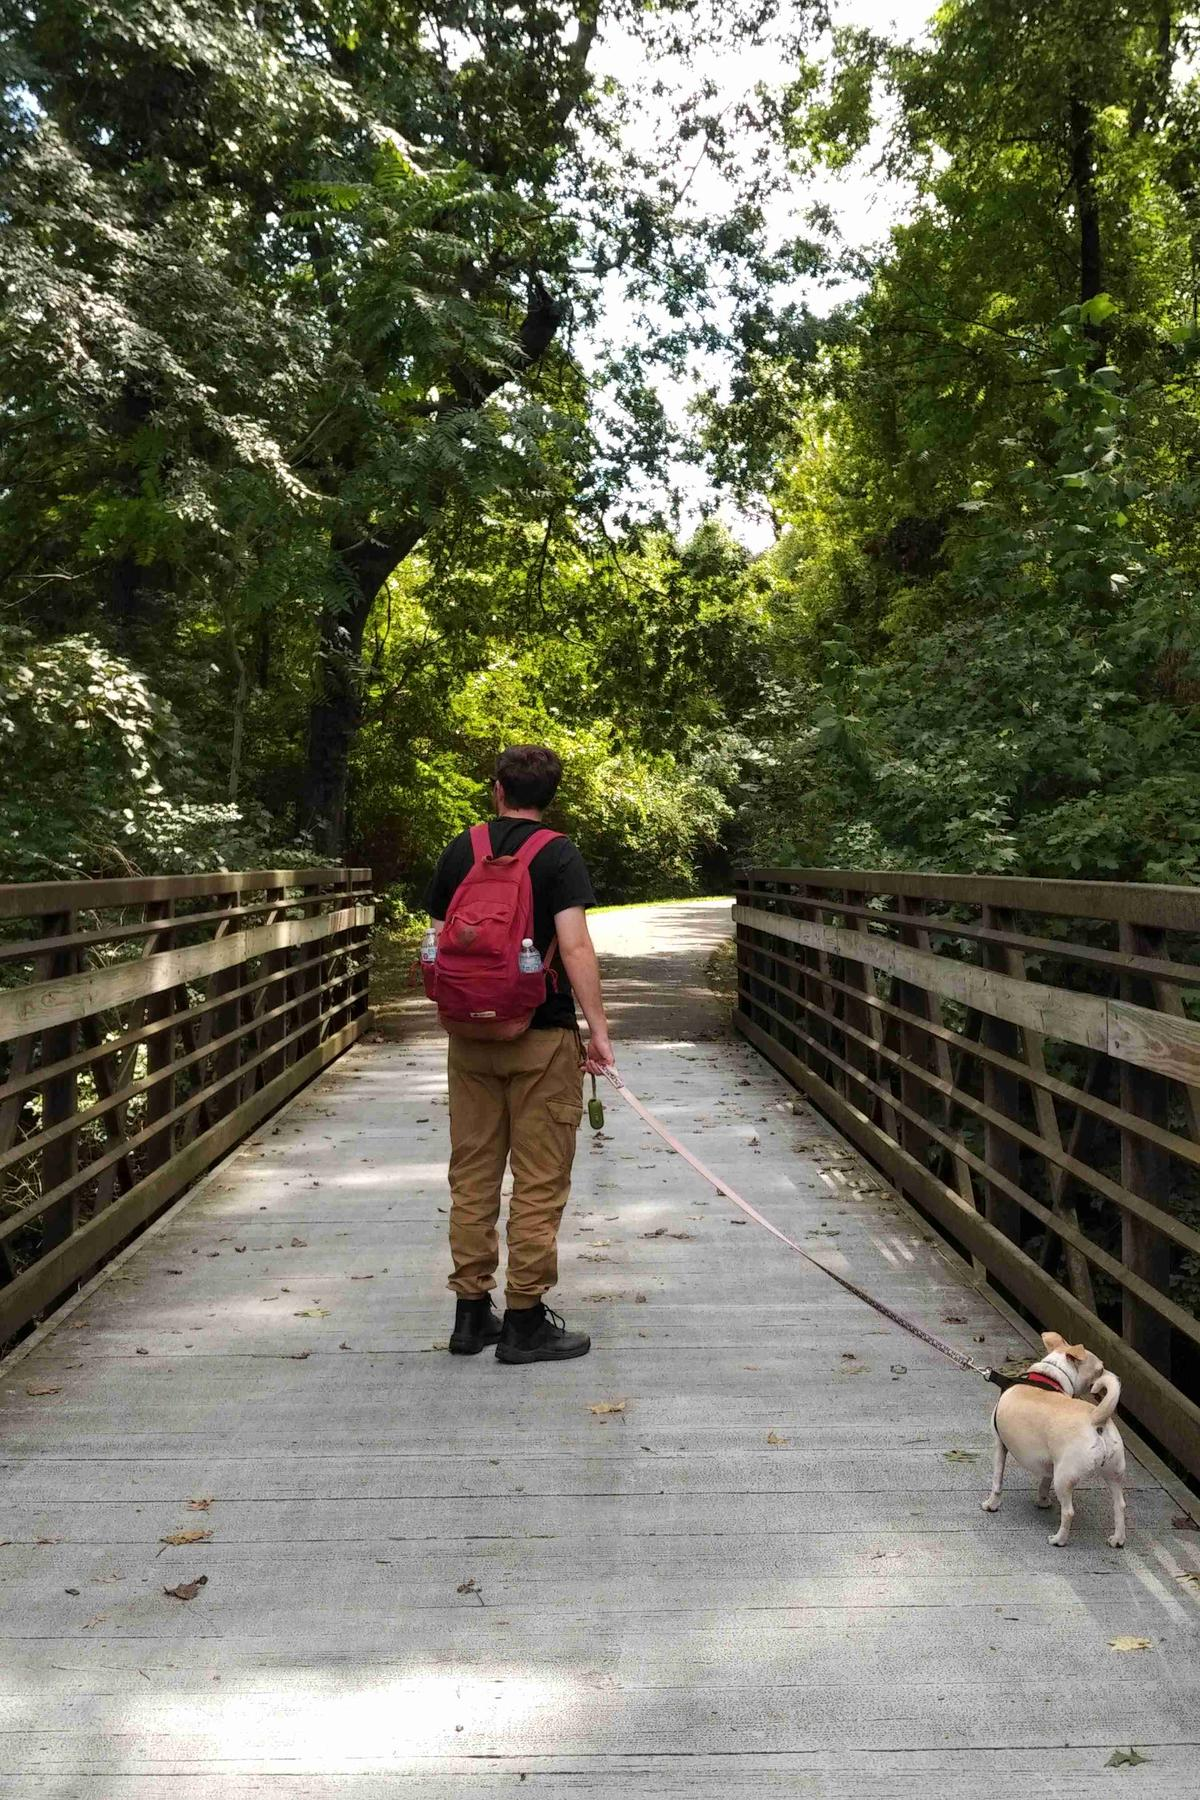 A man and his dog walk across a bridge at Shelby Bottoms Greenway in dog-friendly Nashville.